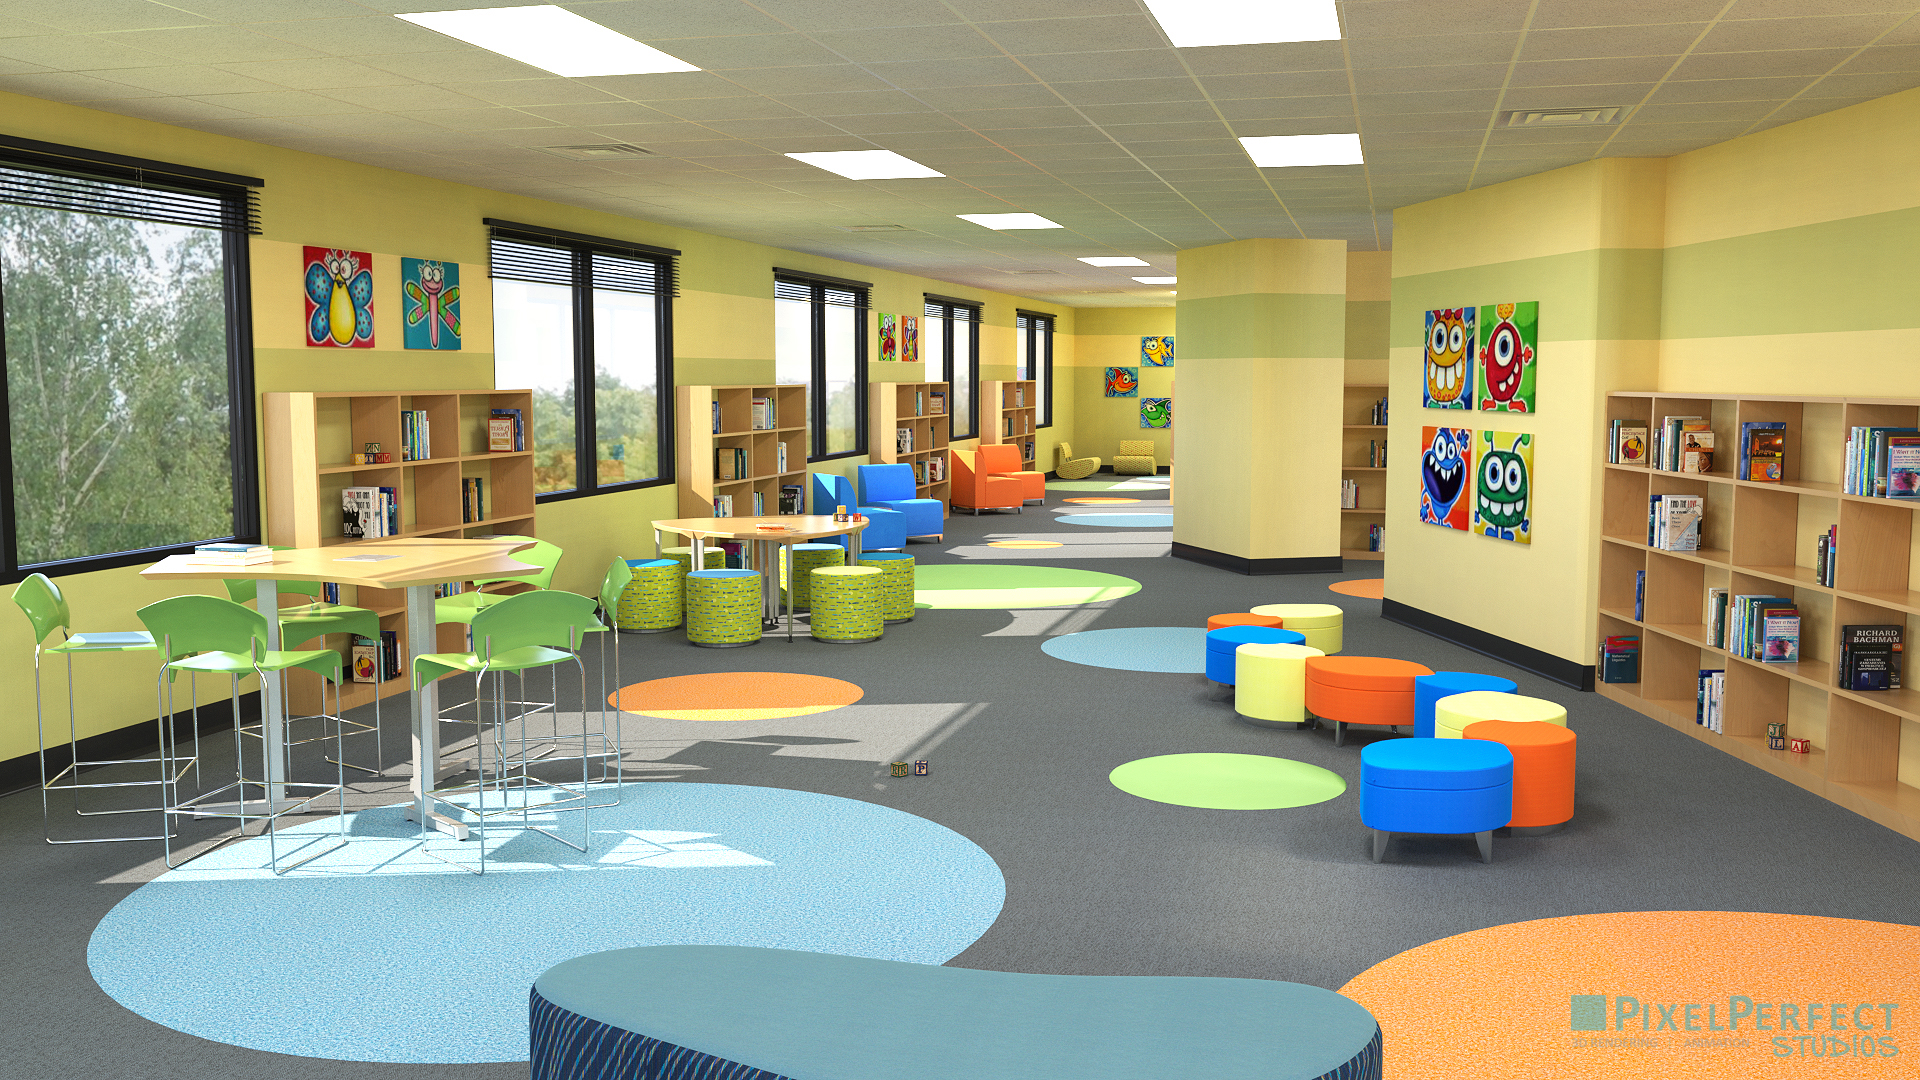 Pixel Perfect 3d Rendering Kids Playroom